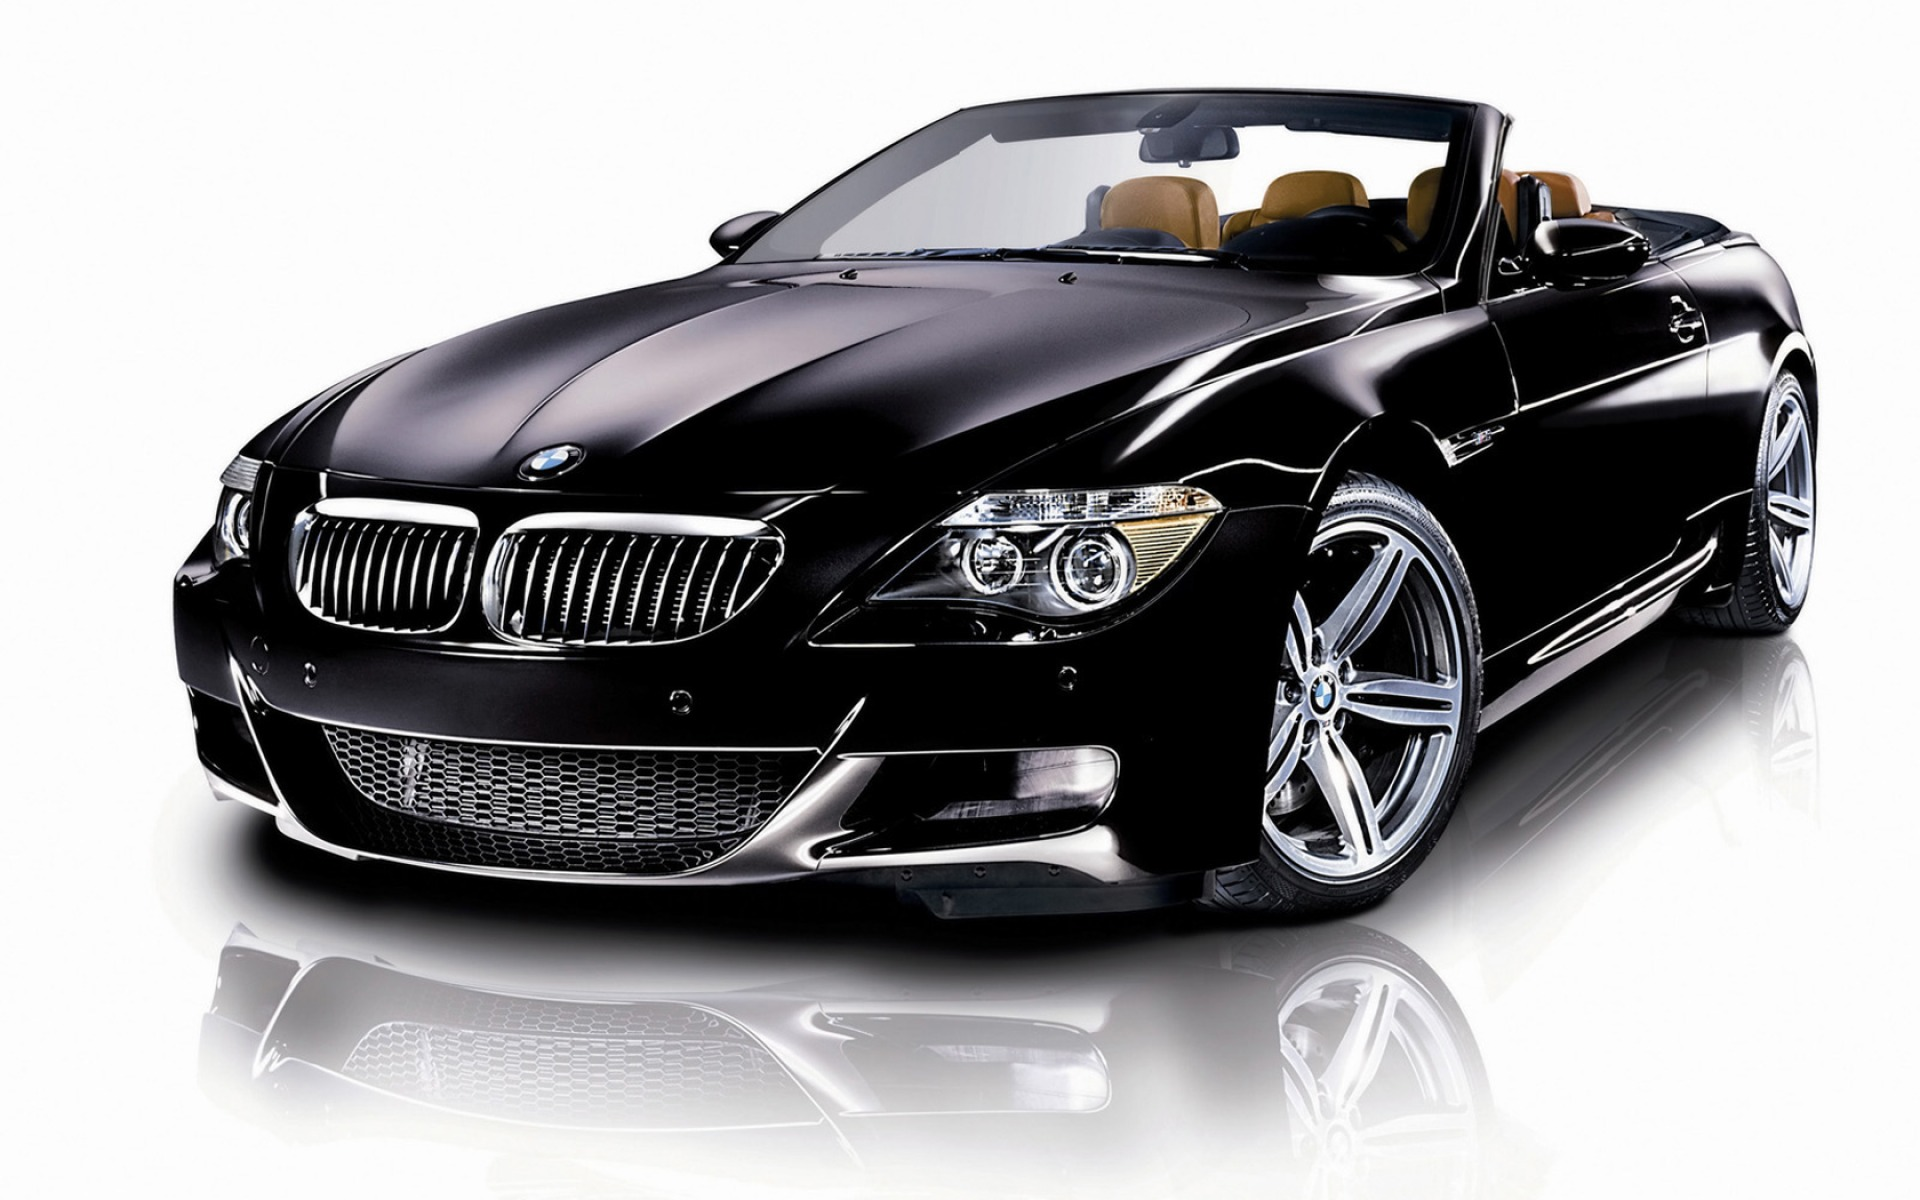 Ultrablogus  Mesmerizing Bmw Car Wallpaper Wallpapers For Free Download About   With Excellent Bmw M Convertible Wallpaper Bmw Cars With Adorable  Chevy Malibu Interior Also Citroen Sm Interior In Addition Audi A  Interior And  Camry Xle Interior As Well As C Amg Interior Additionally Audi Q Interior Images From Allfreedownloadcom With Ultrablogus  Excellent Bmw Car Wallpaper Wallpapers For Free Download About   With Adorable Bmw M Convertible Wallpaper Bmw Cars And Mesmerizing  Chevy Malibu Interior Also Citroen Sm Interior In Addition Audi A  Interior From Allfreedownloadcom